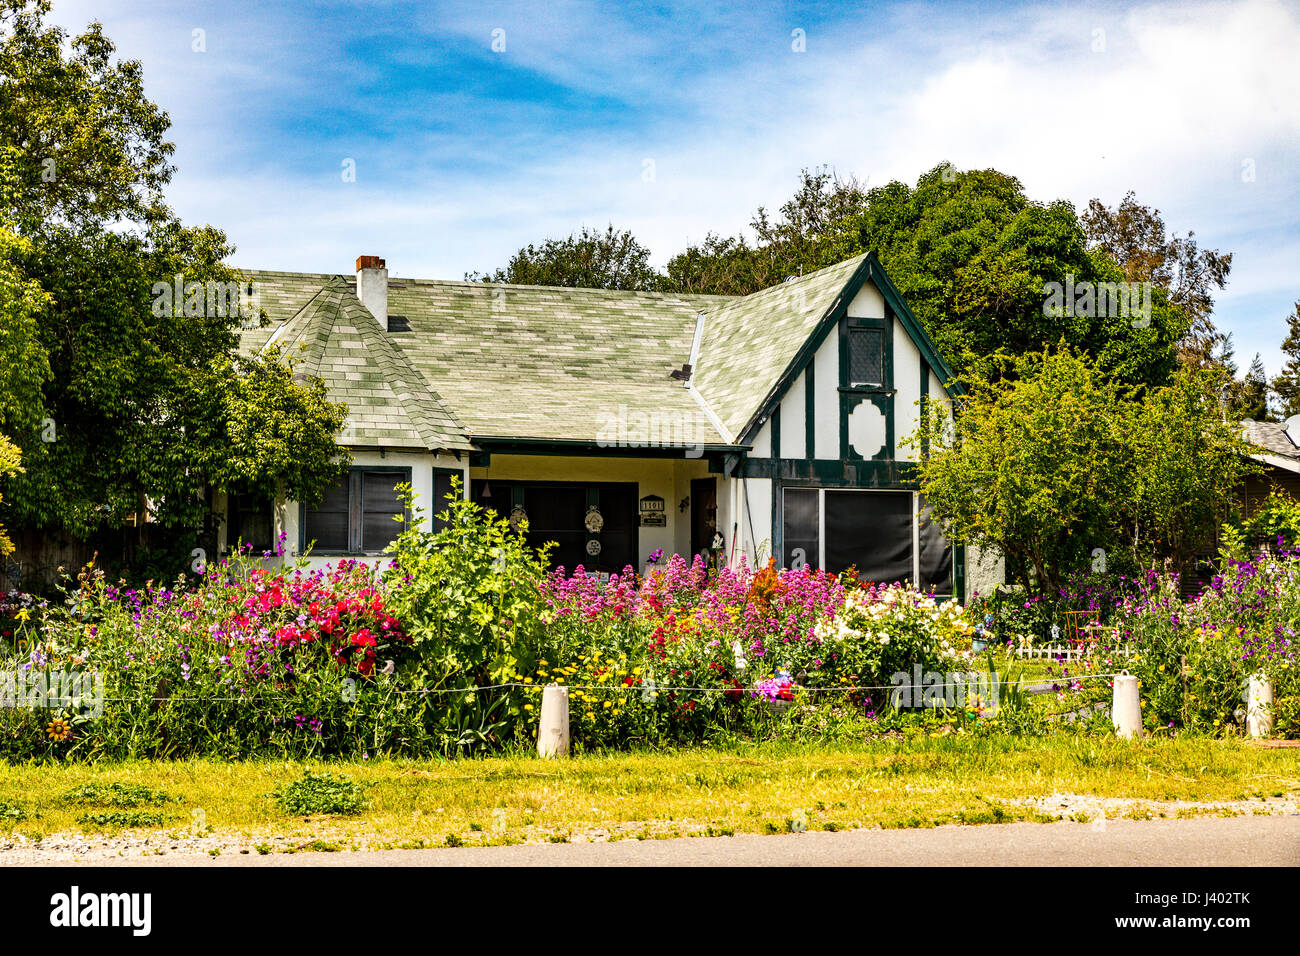 a-cute-little-cottage-in-modesto-califor